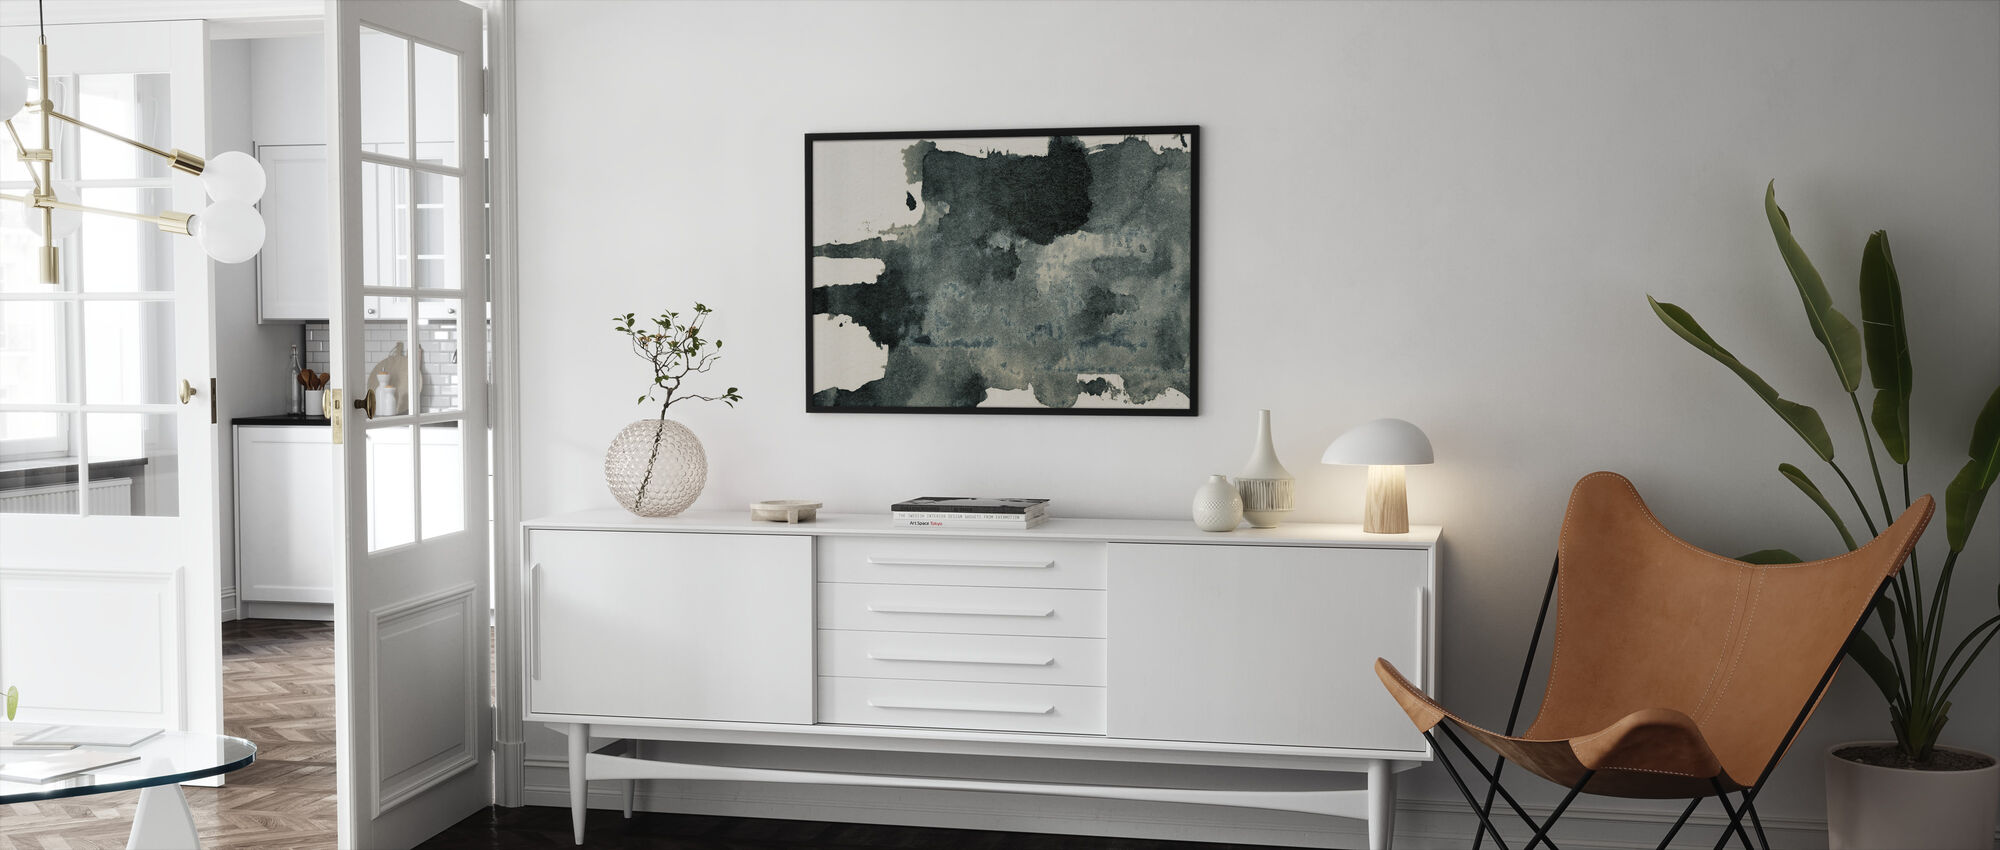 Fifty Shades of Grey - Framed print - Living Room